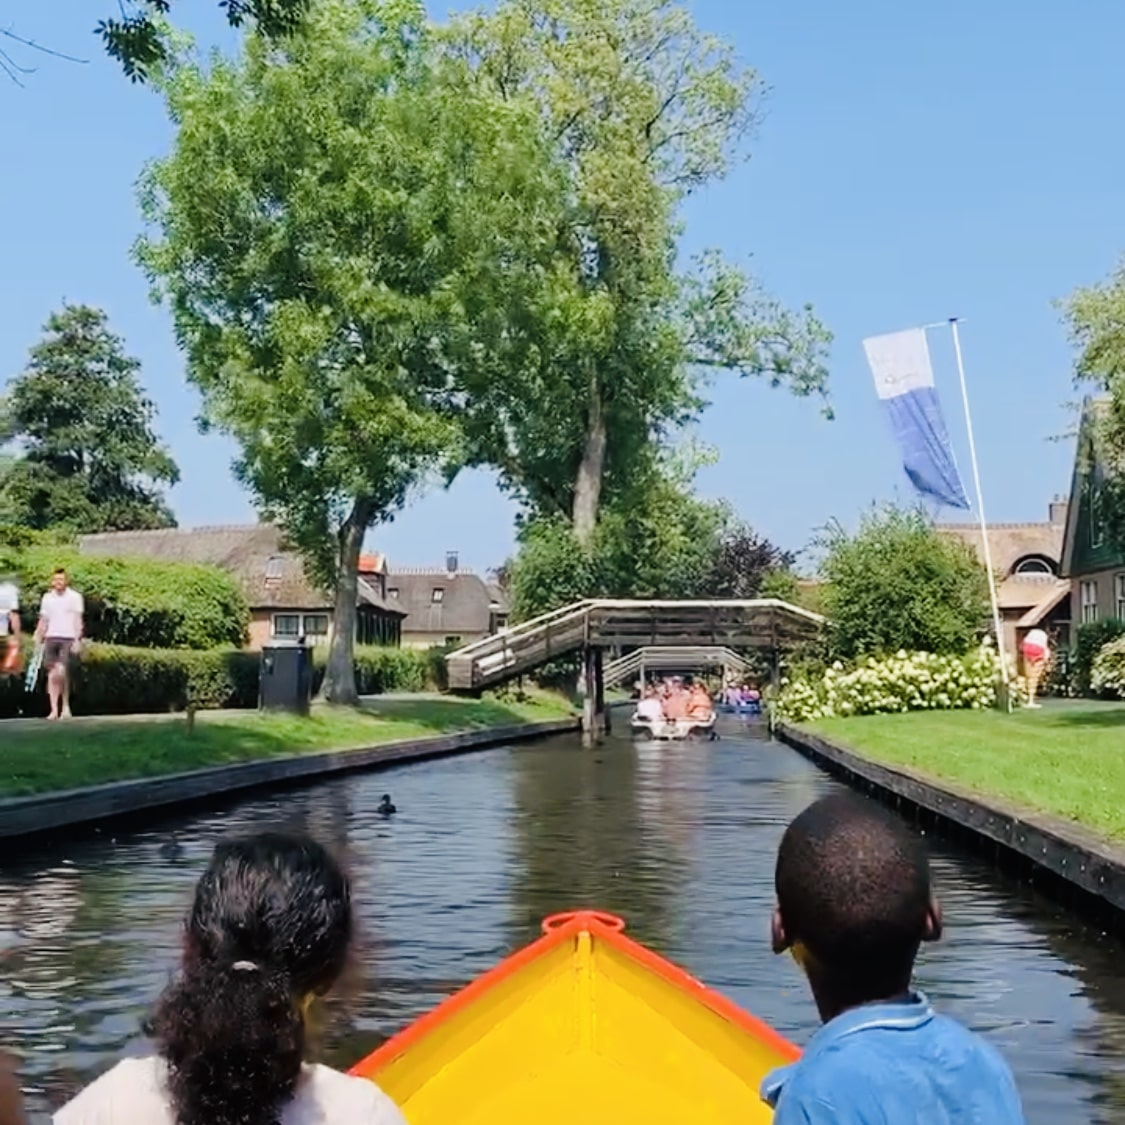 day trip from Amsterdam to giethoorn for a private boat ride with tulip day tours